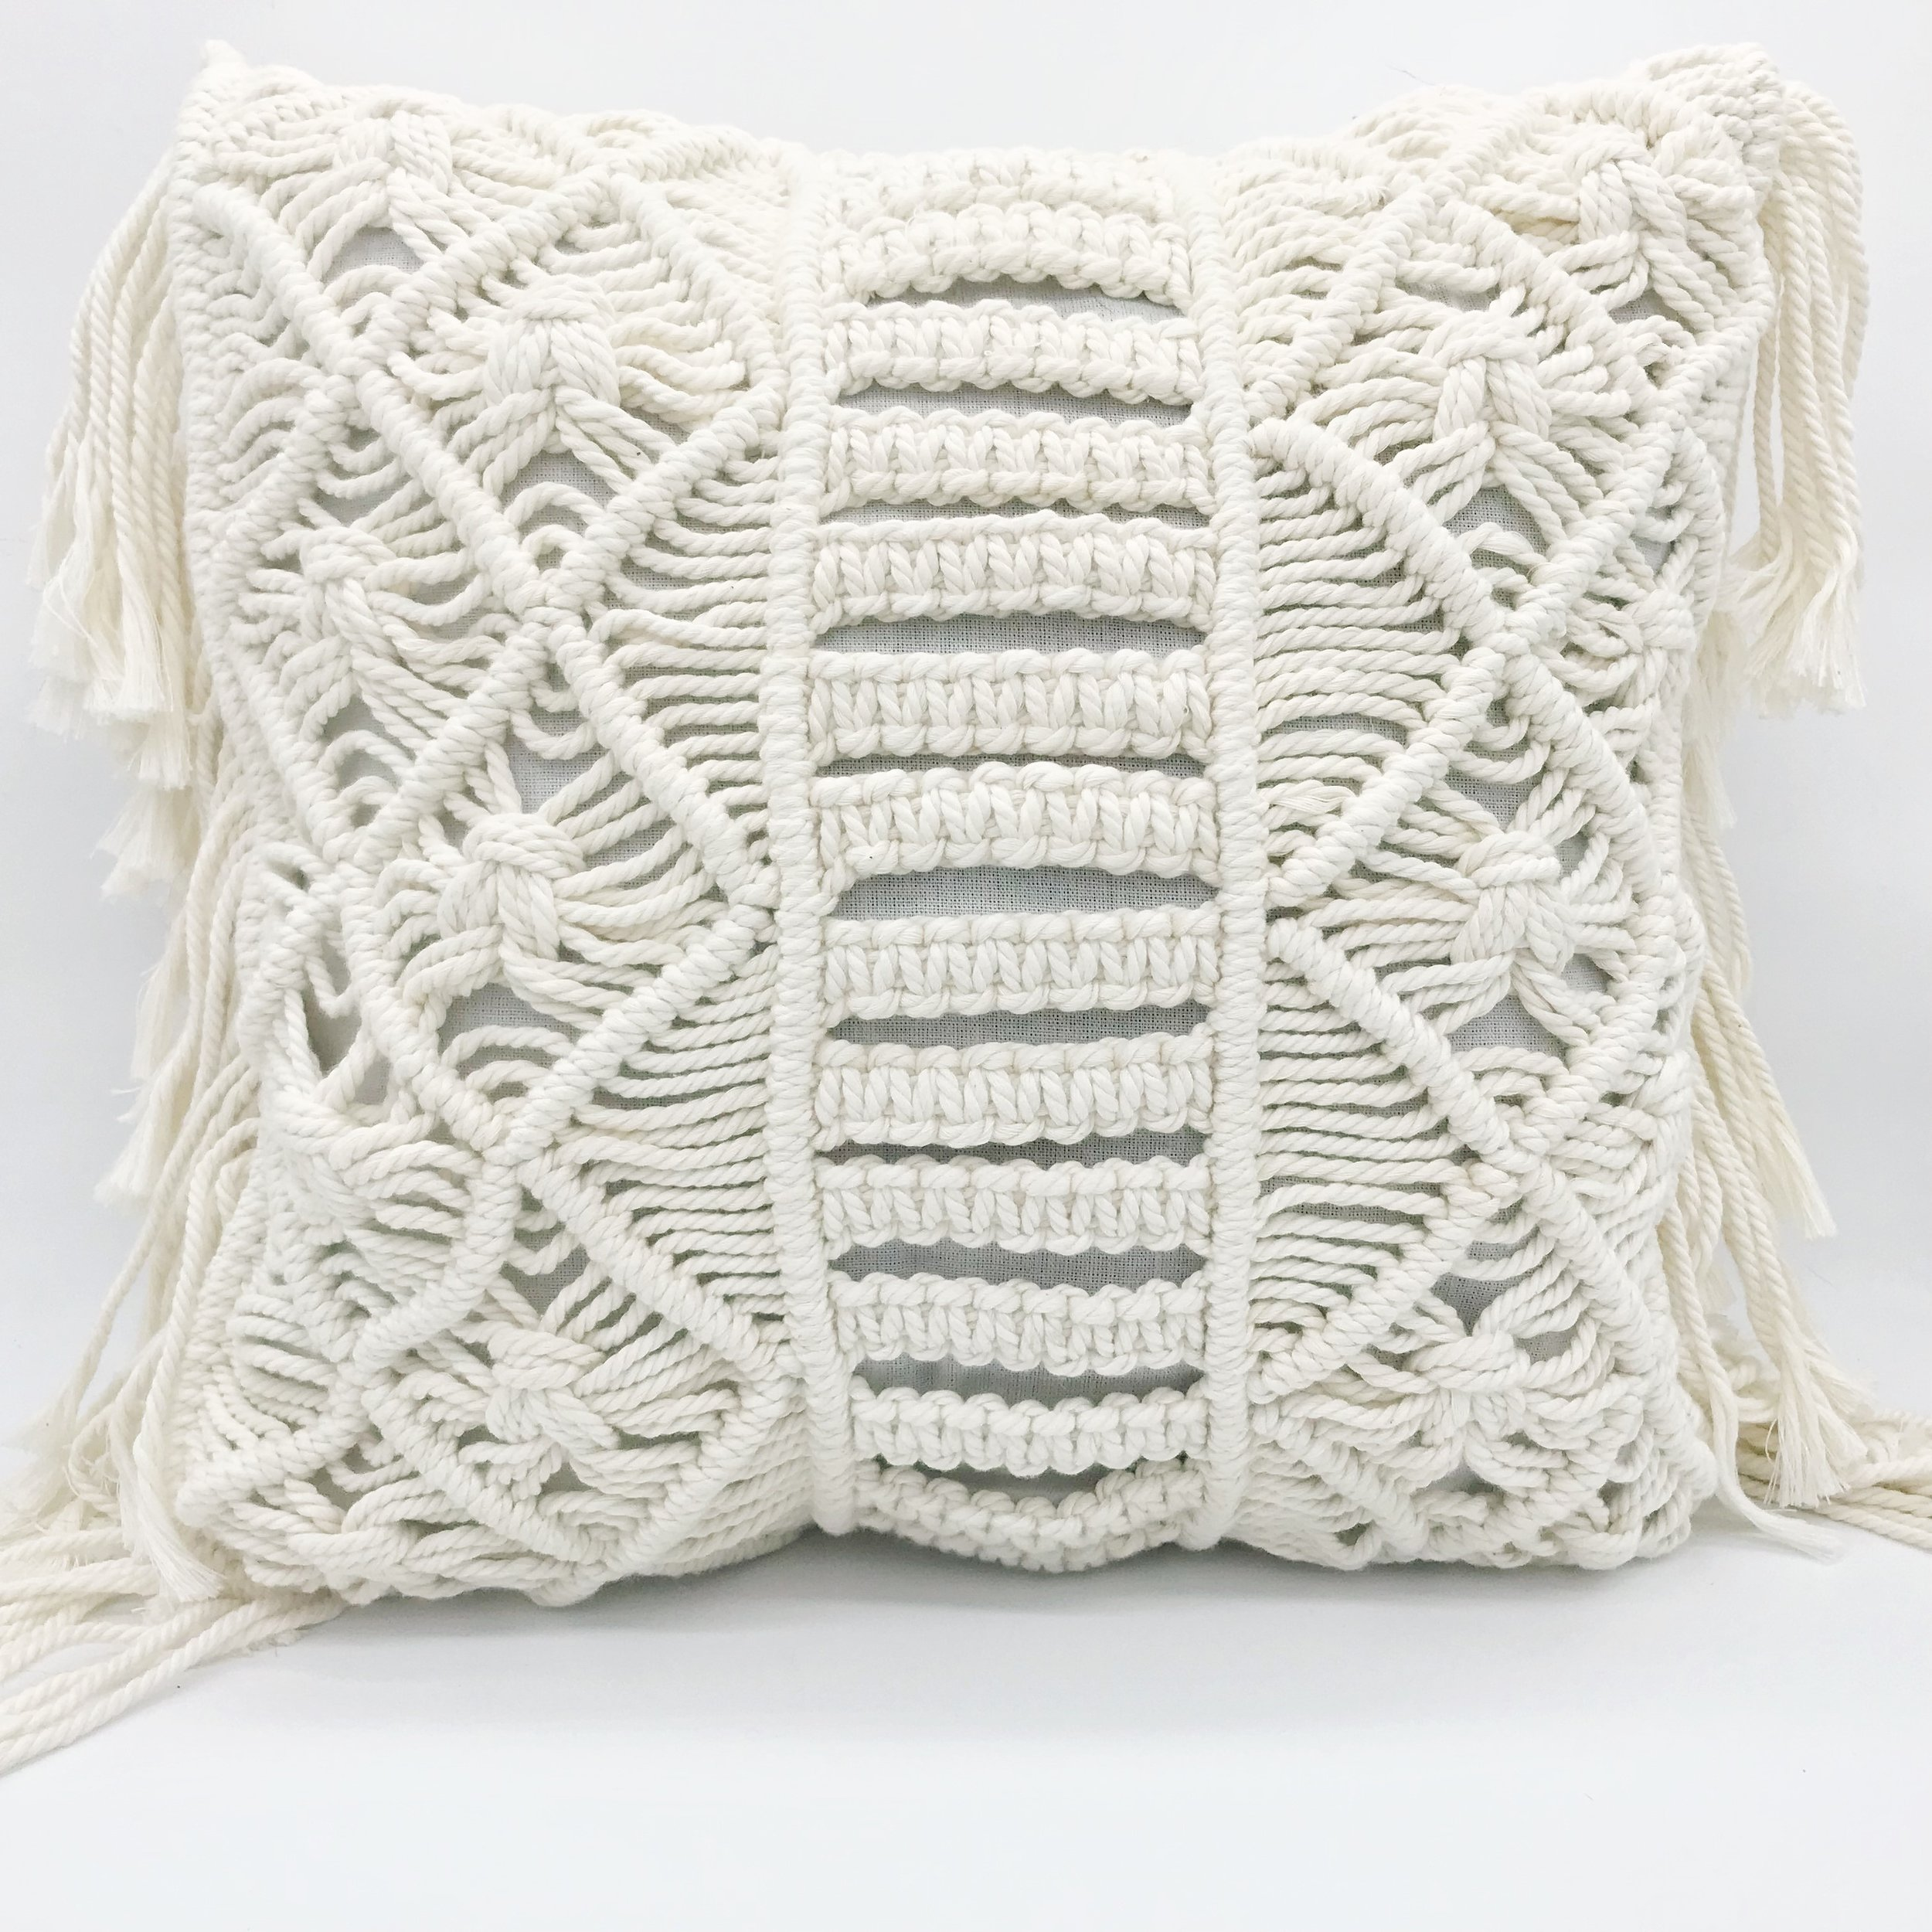 Cushion - macrame  Price: $8.00  Qty: 2